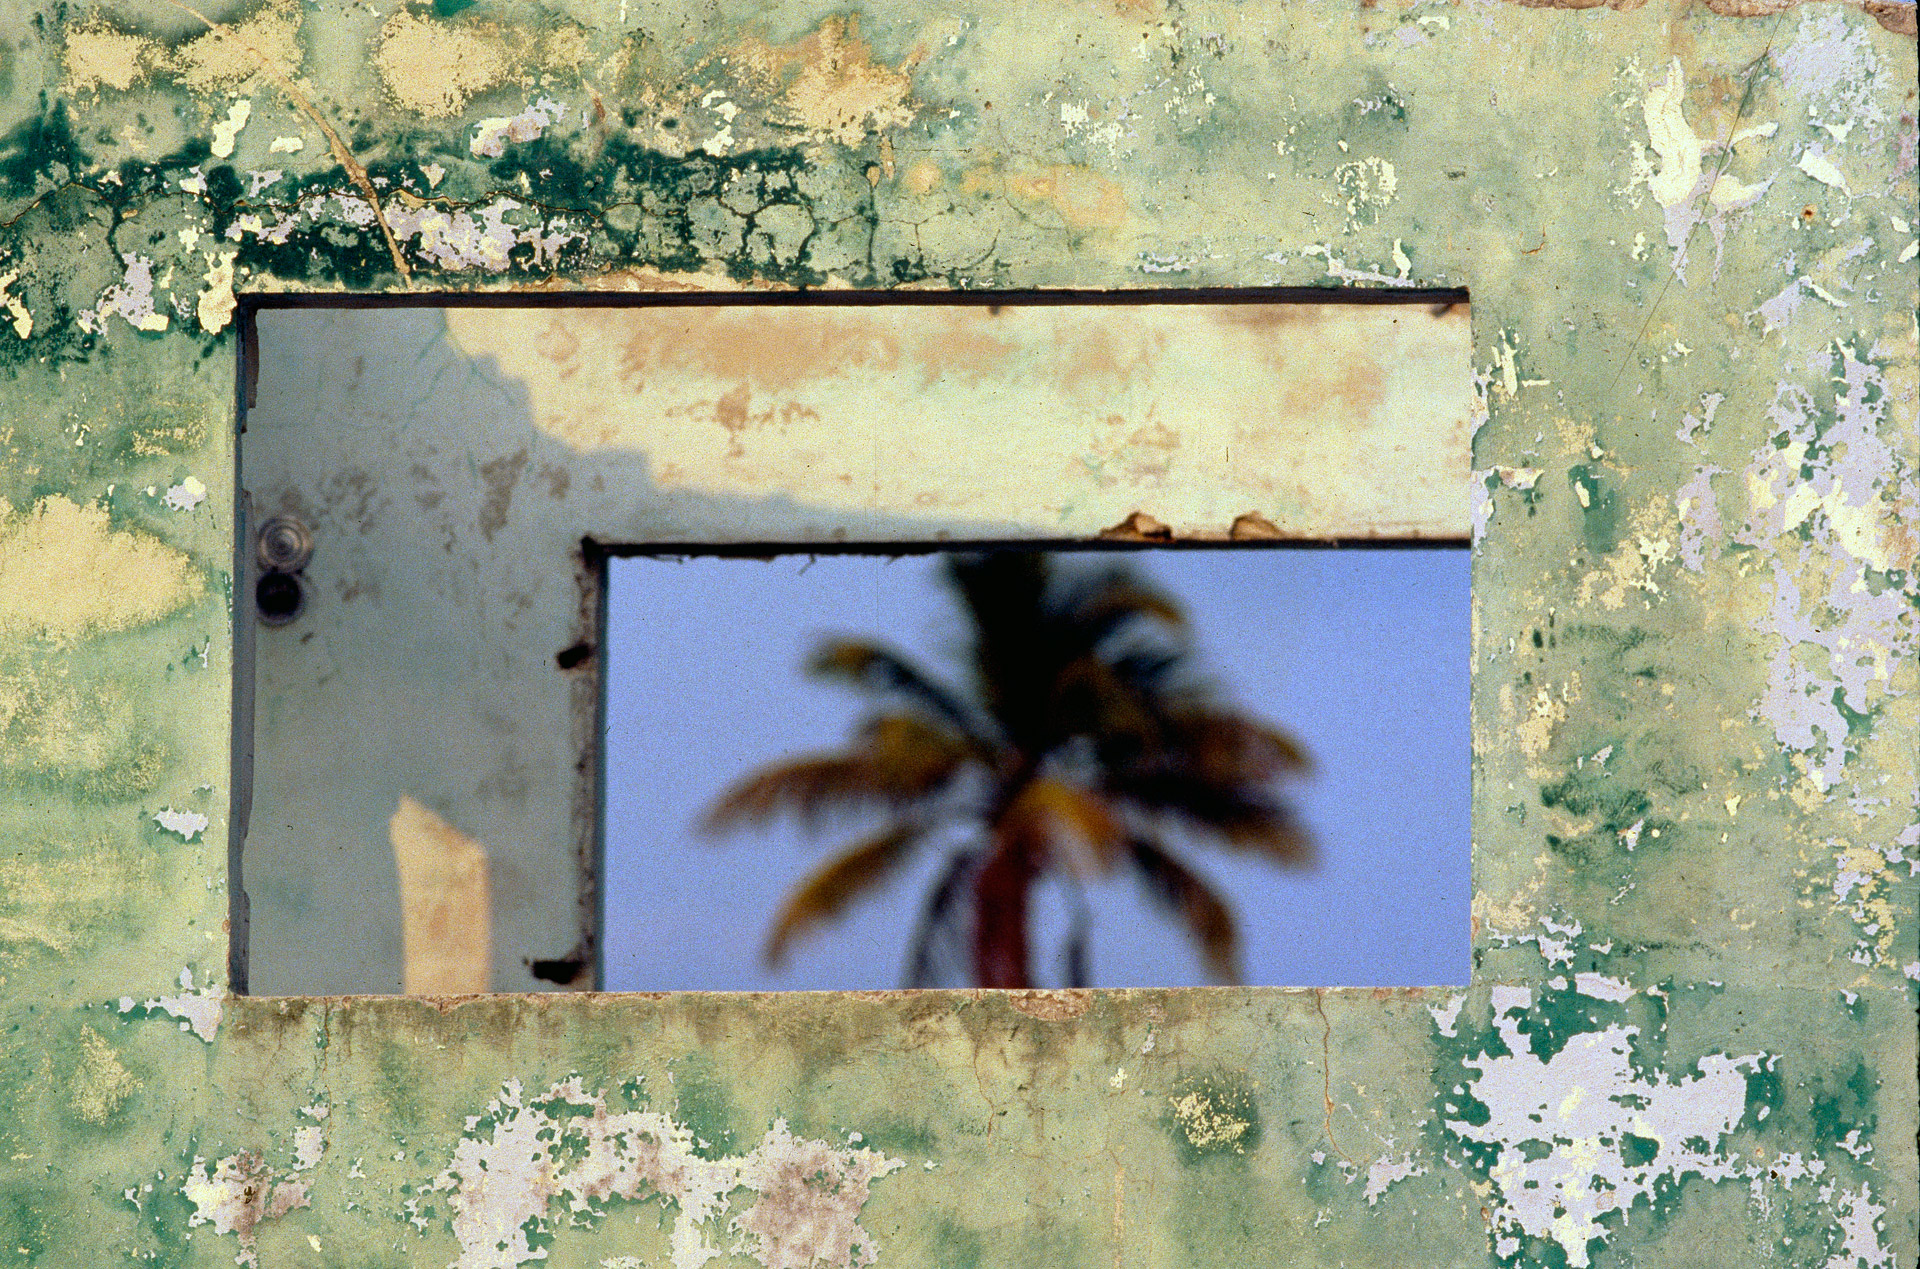 A palm tree and walls in Tulum in Mexico